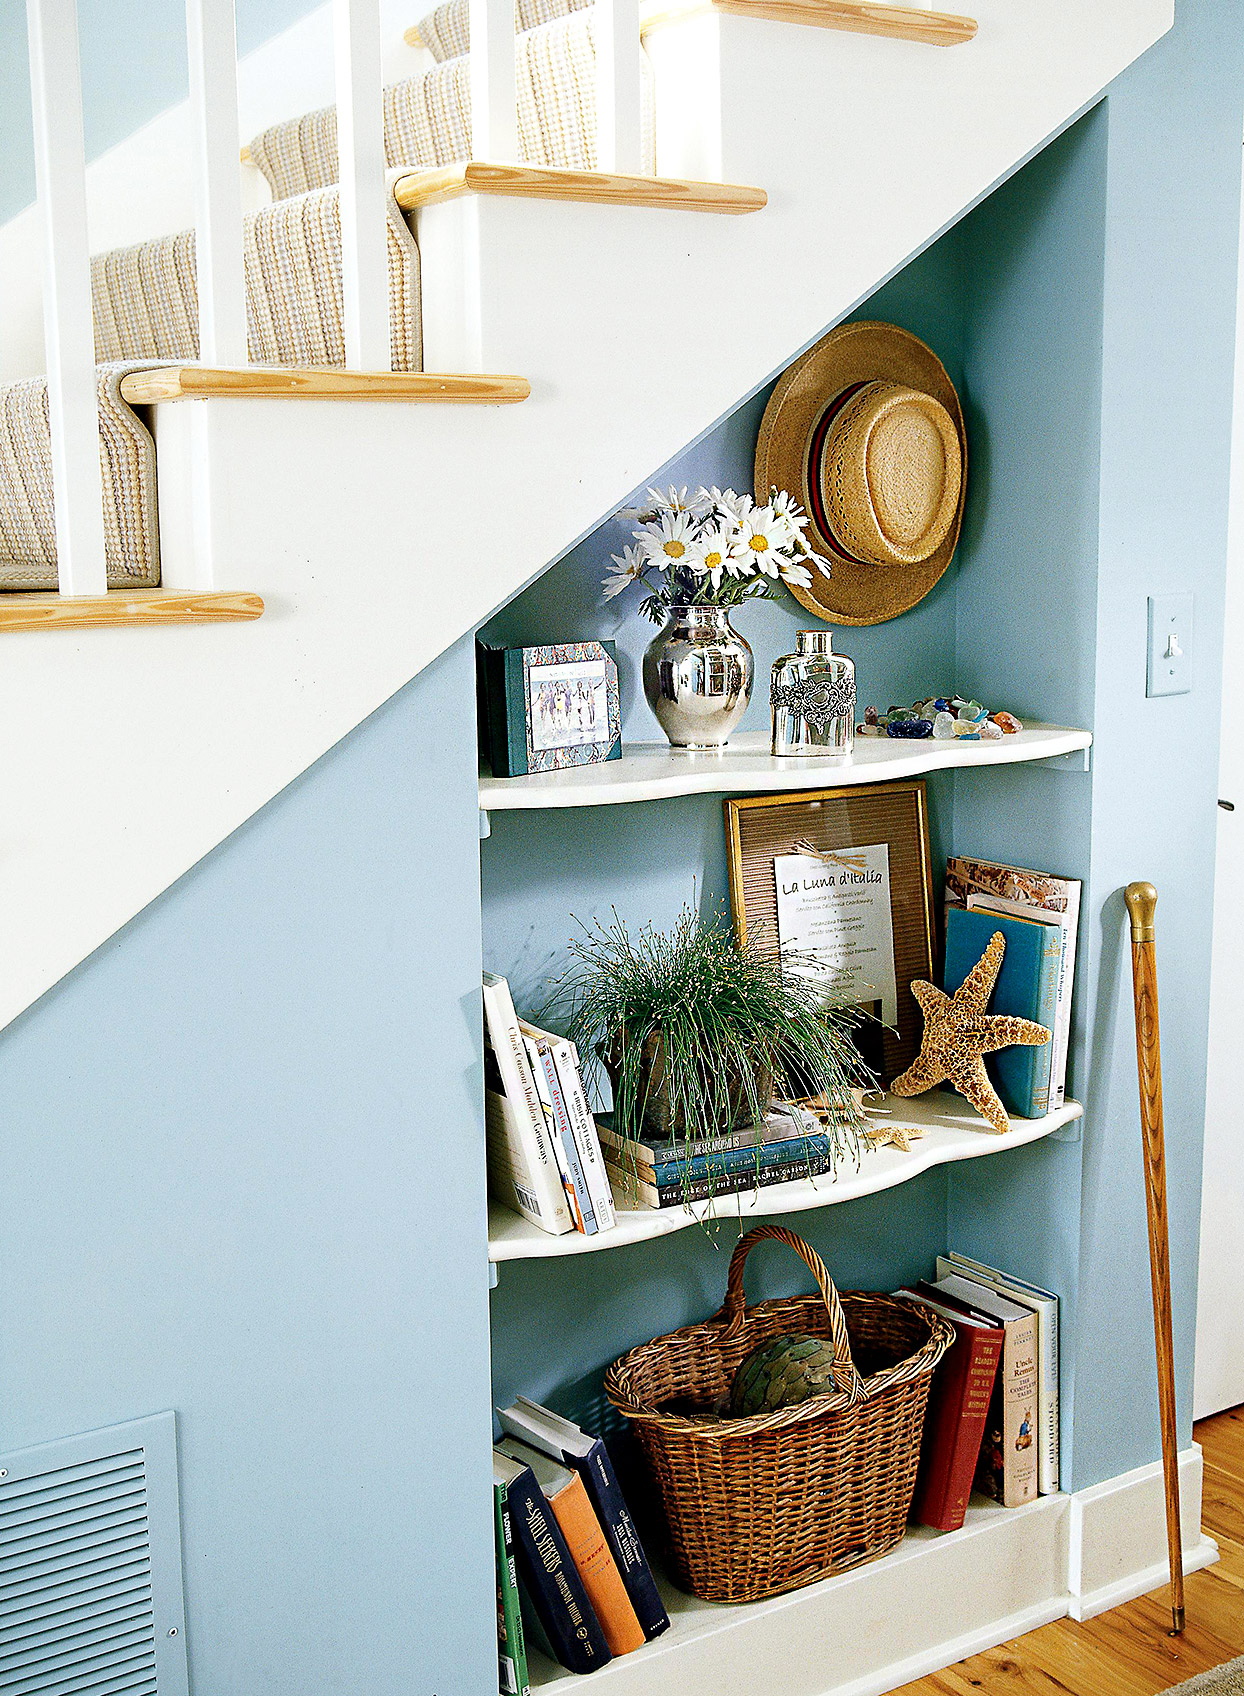 Shelves under stairs with décor